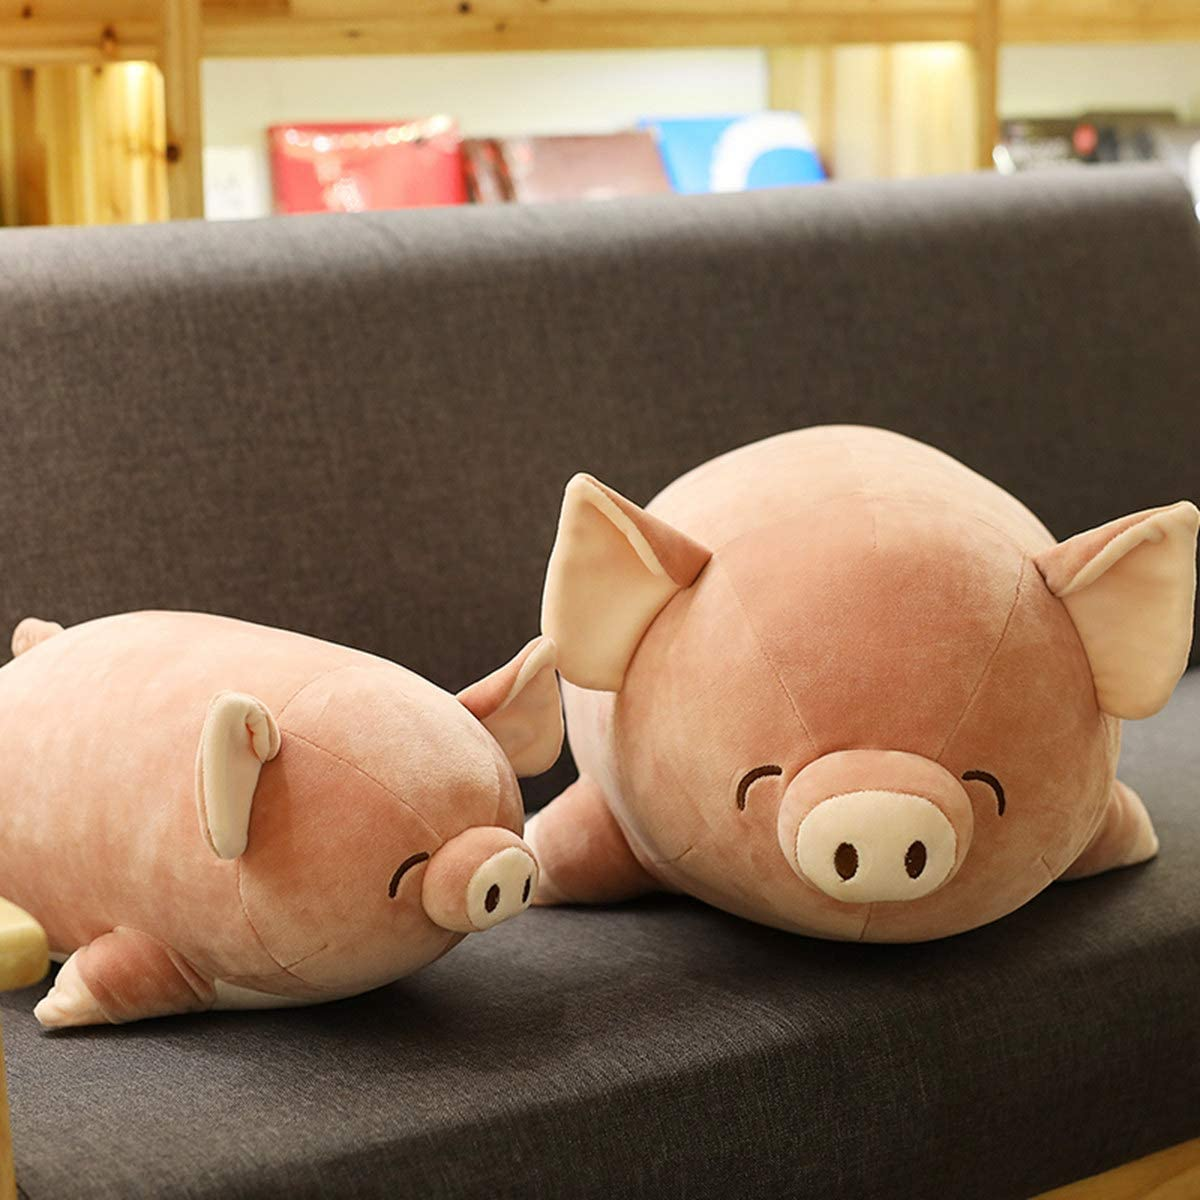 Soft Hug Plush Pillow, ONXE Cute Pig Pillow Round Chubby Animal Pillow Stuffed Cotton Animal Plush Toy, 16'' Doll Toy for Kids Girlfriend (Pink)